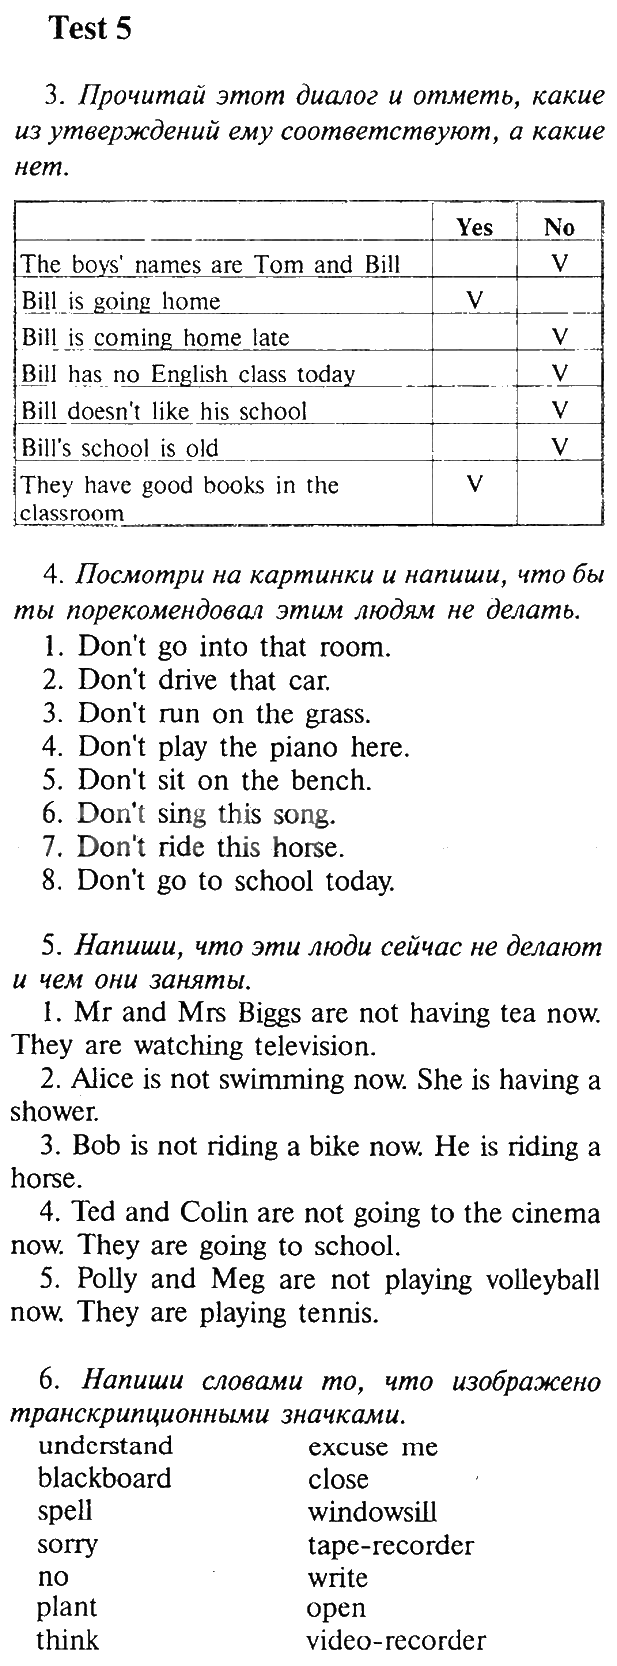 11 класс happy english test yourself lesson 15 ответы плиз